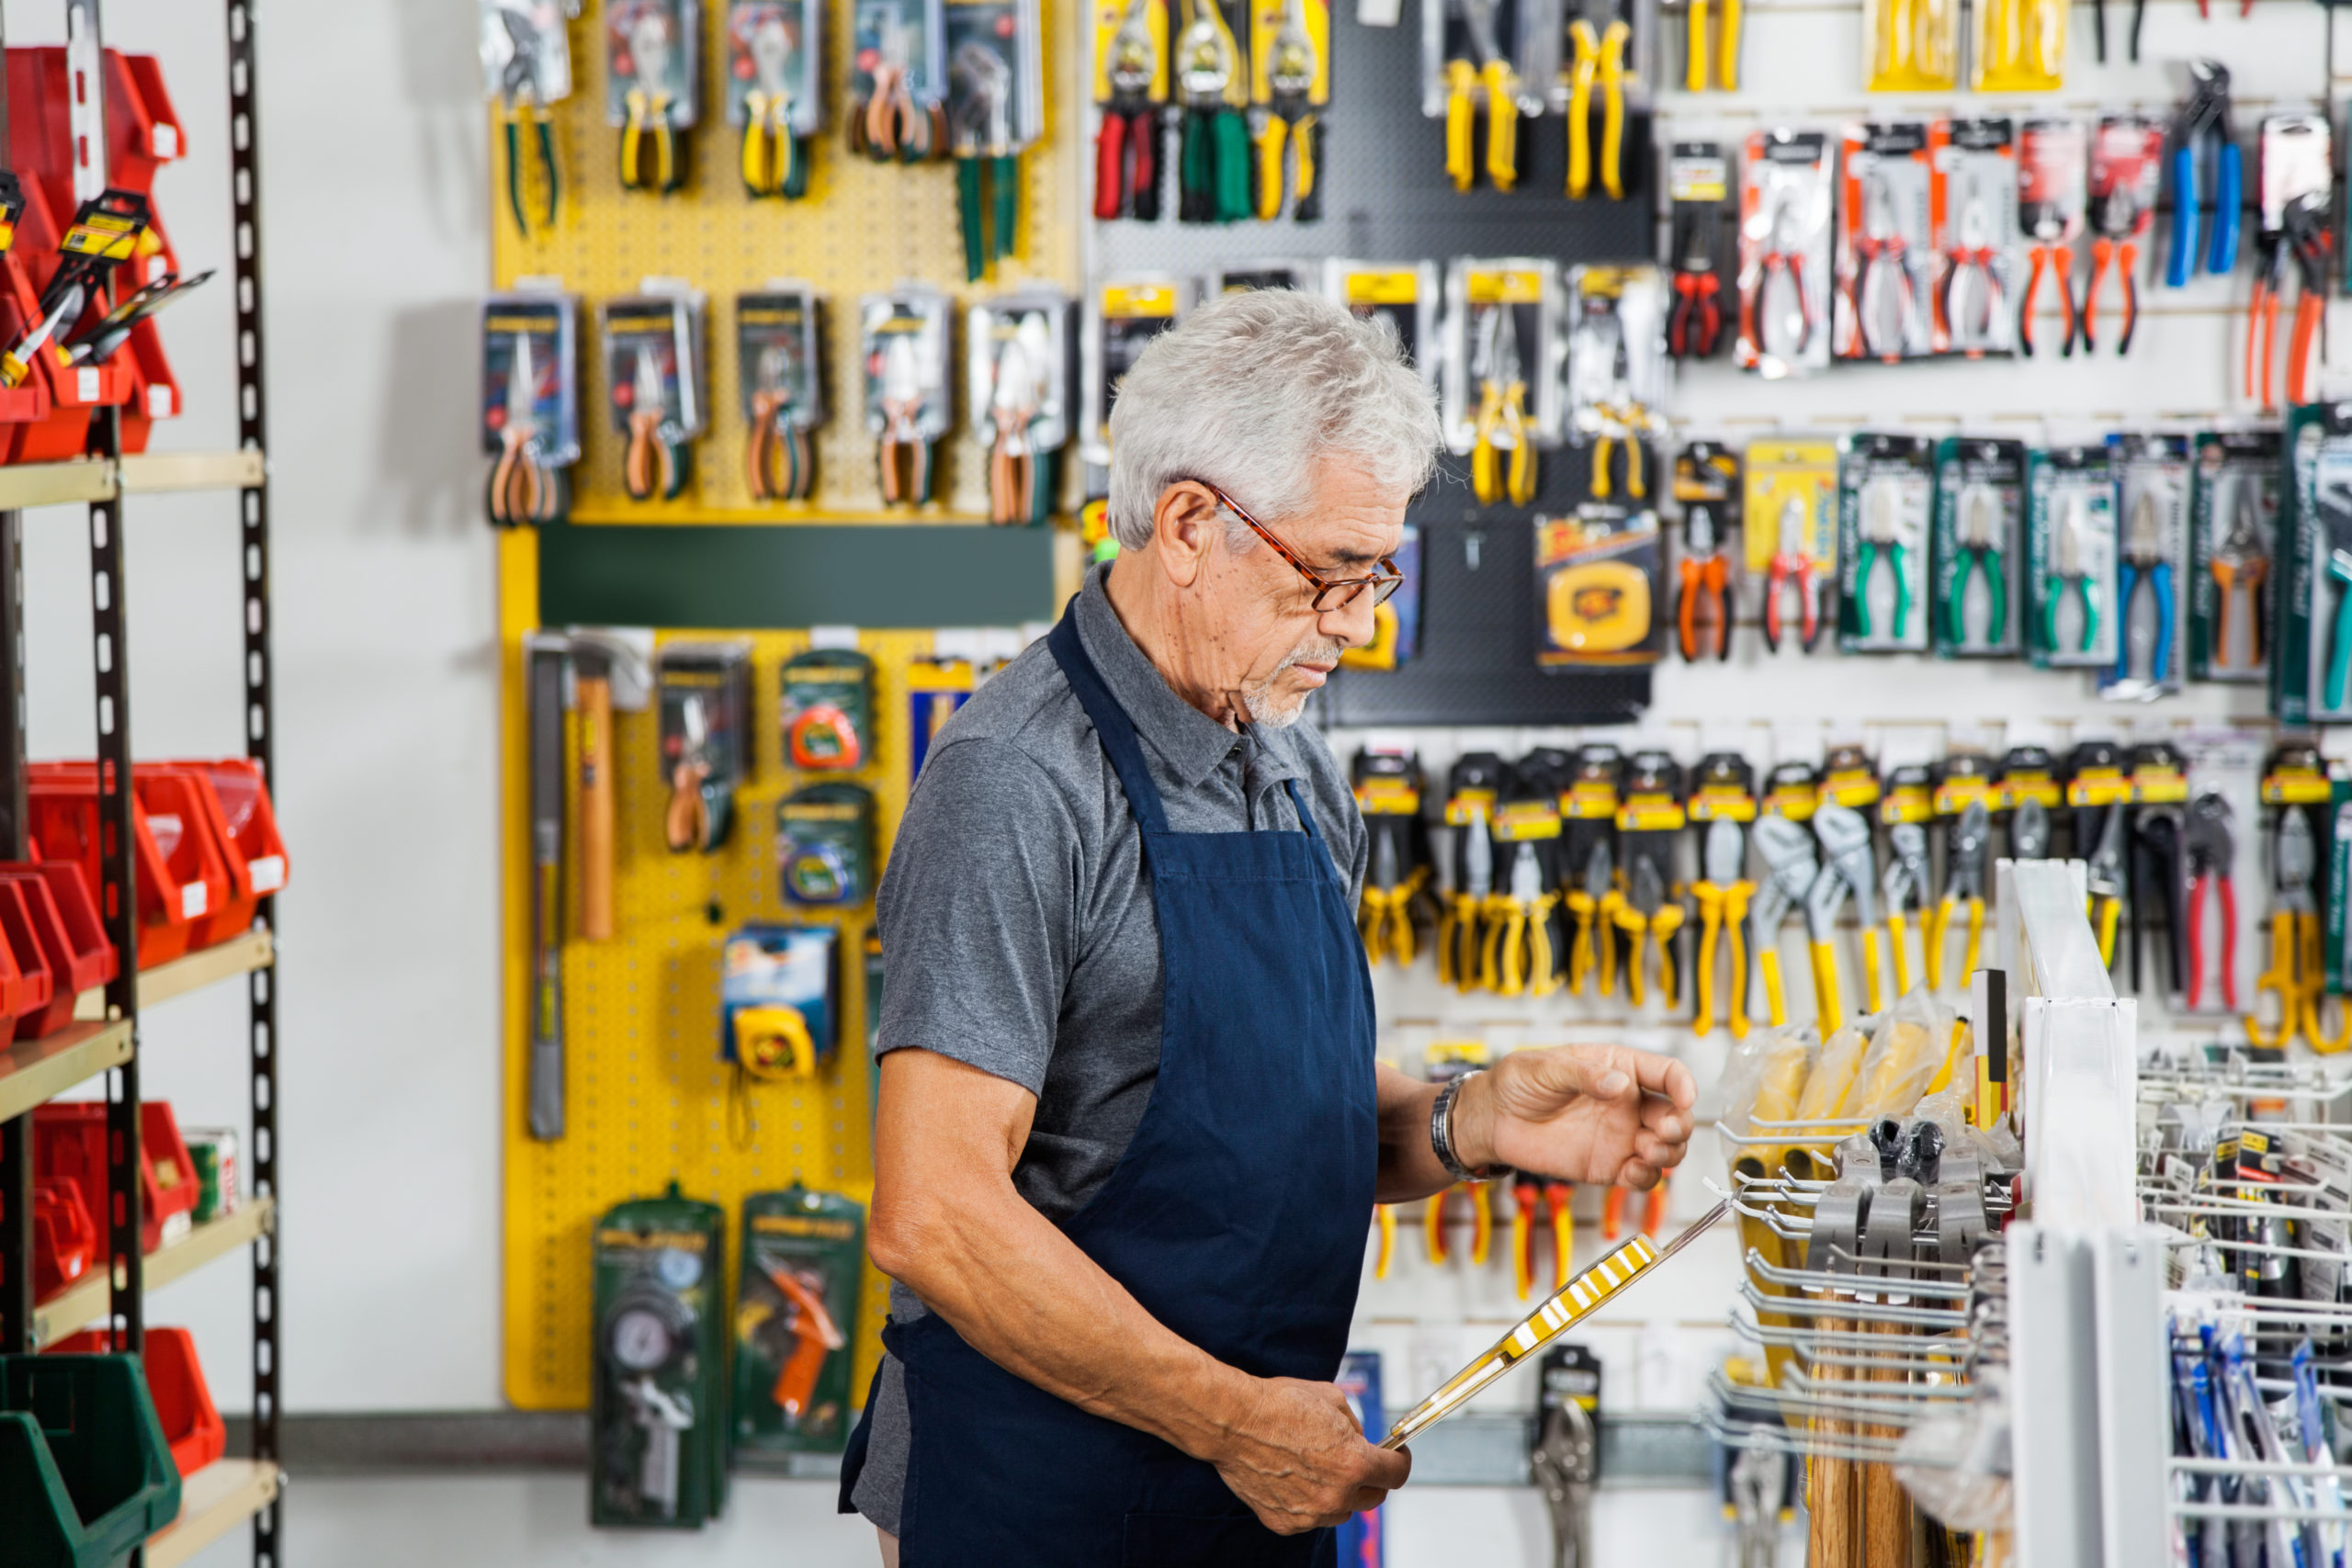 Hardware stores sell to households, businesses and tradespeople